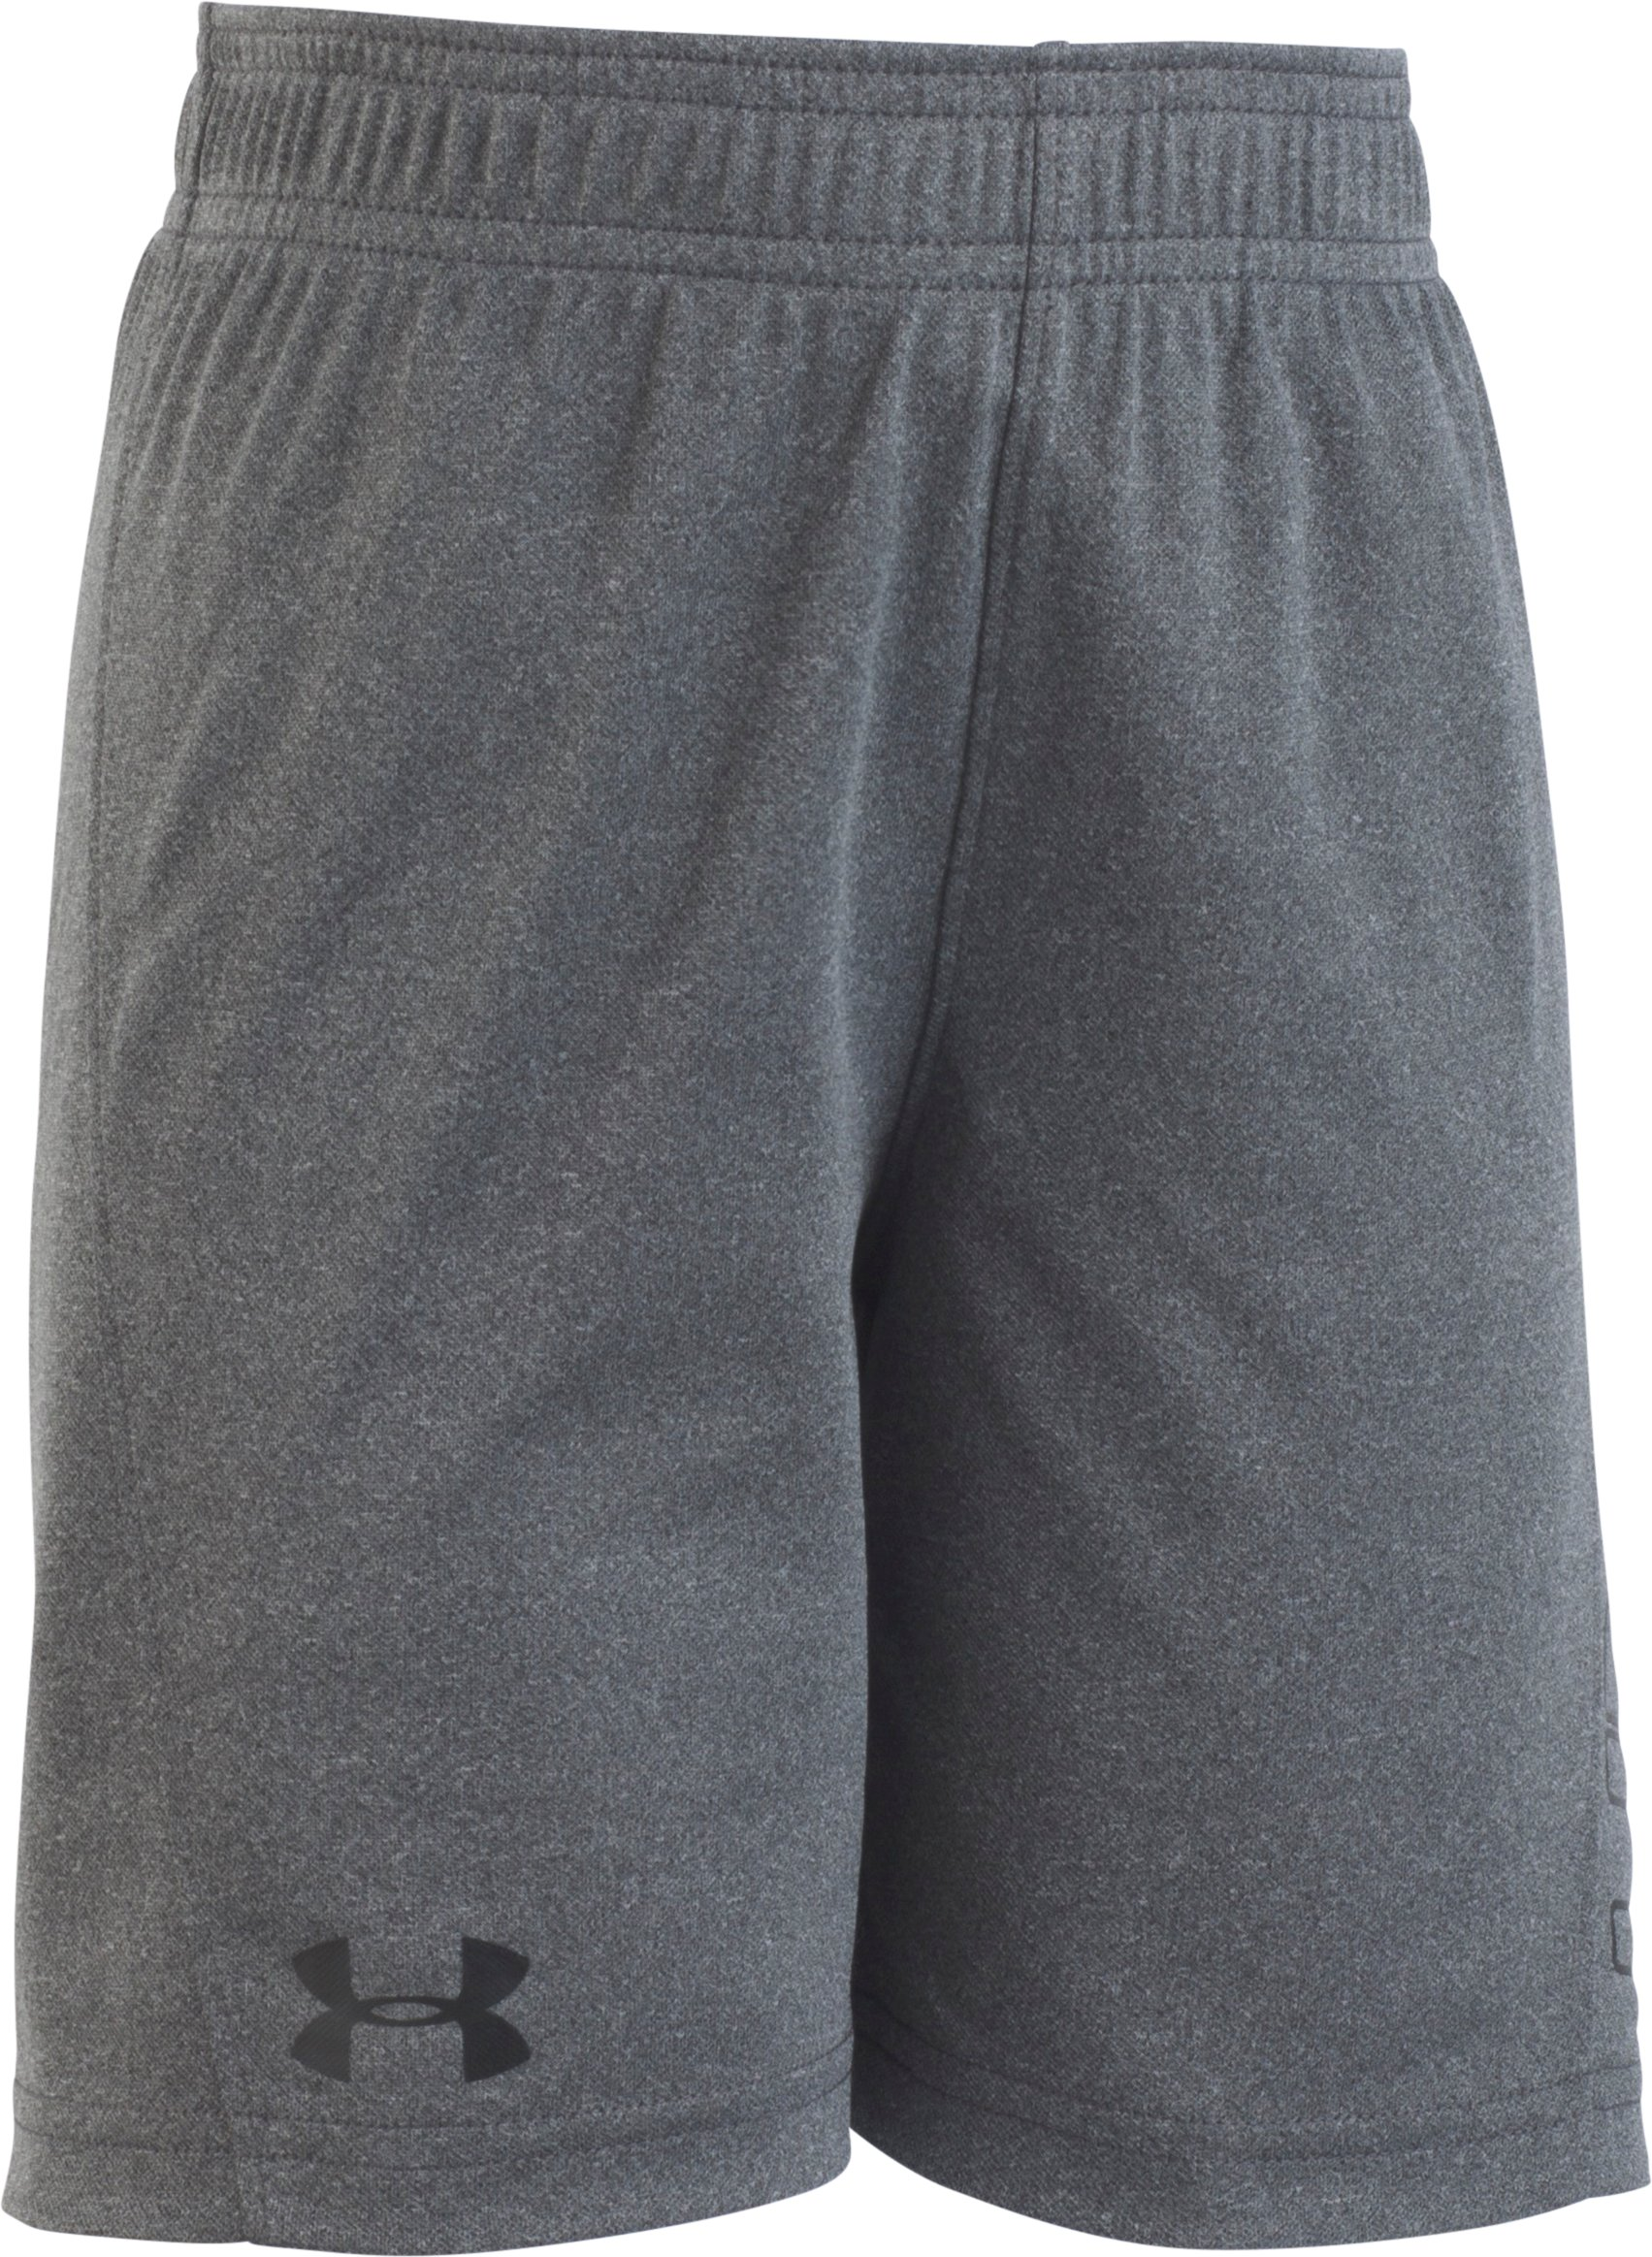 Boys' Toddler UA Kick Off Solid Short , Charcoal Medium Heather, Laydown